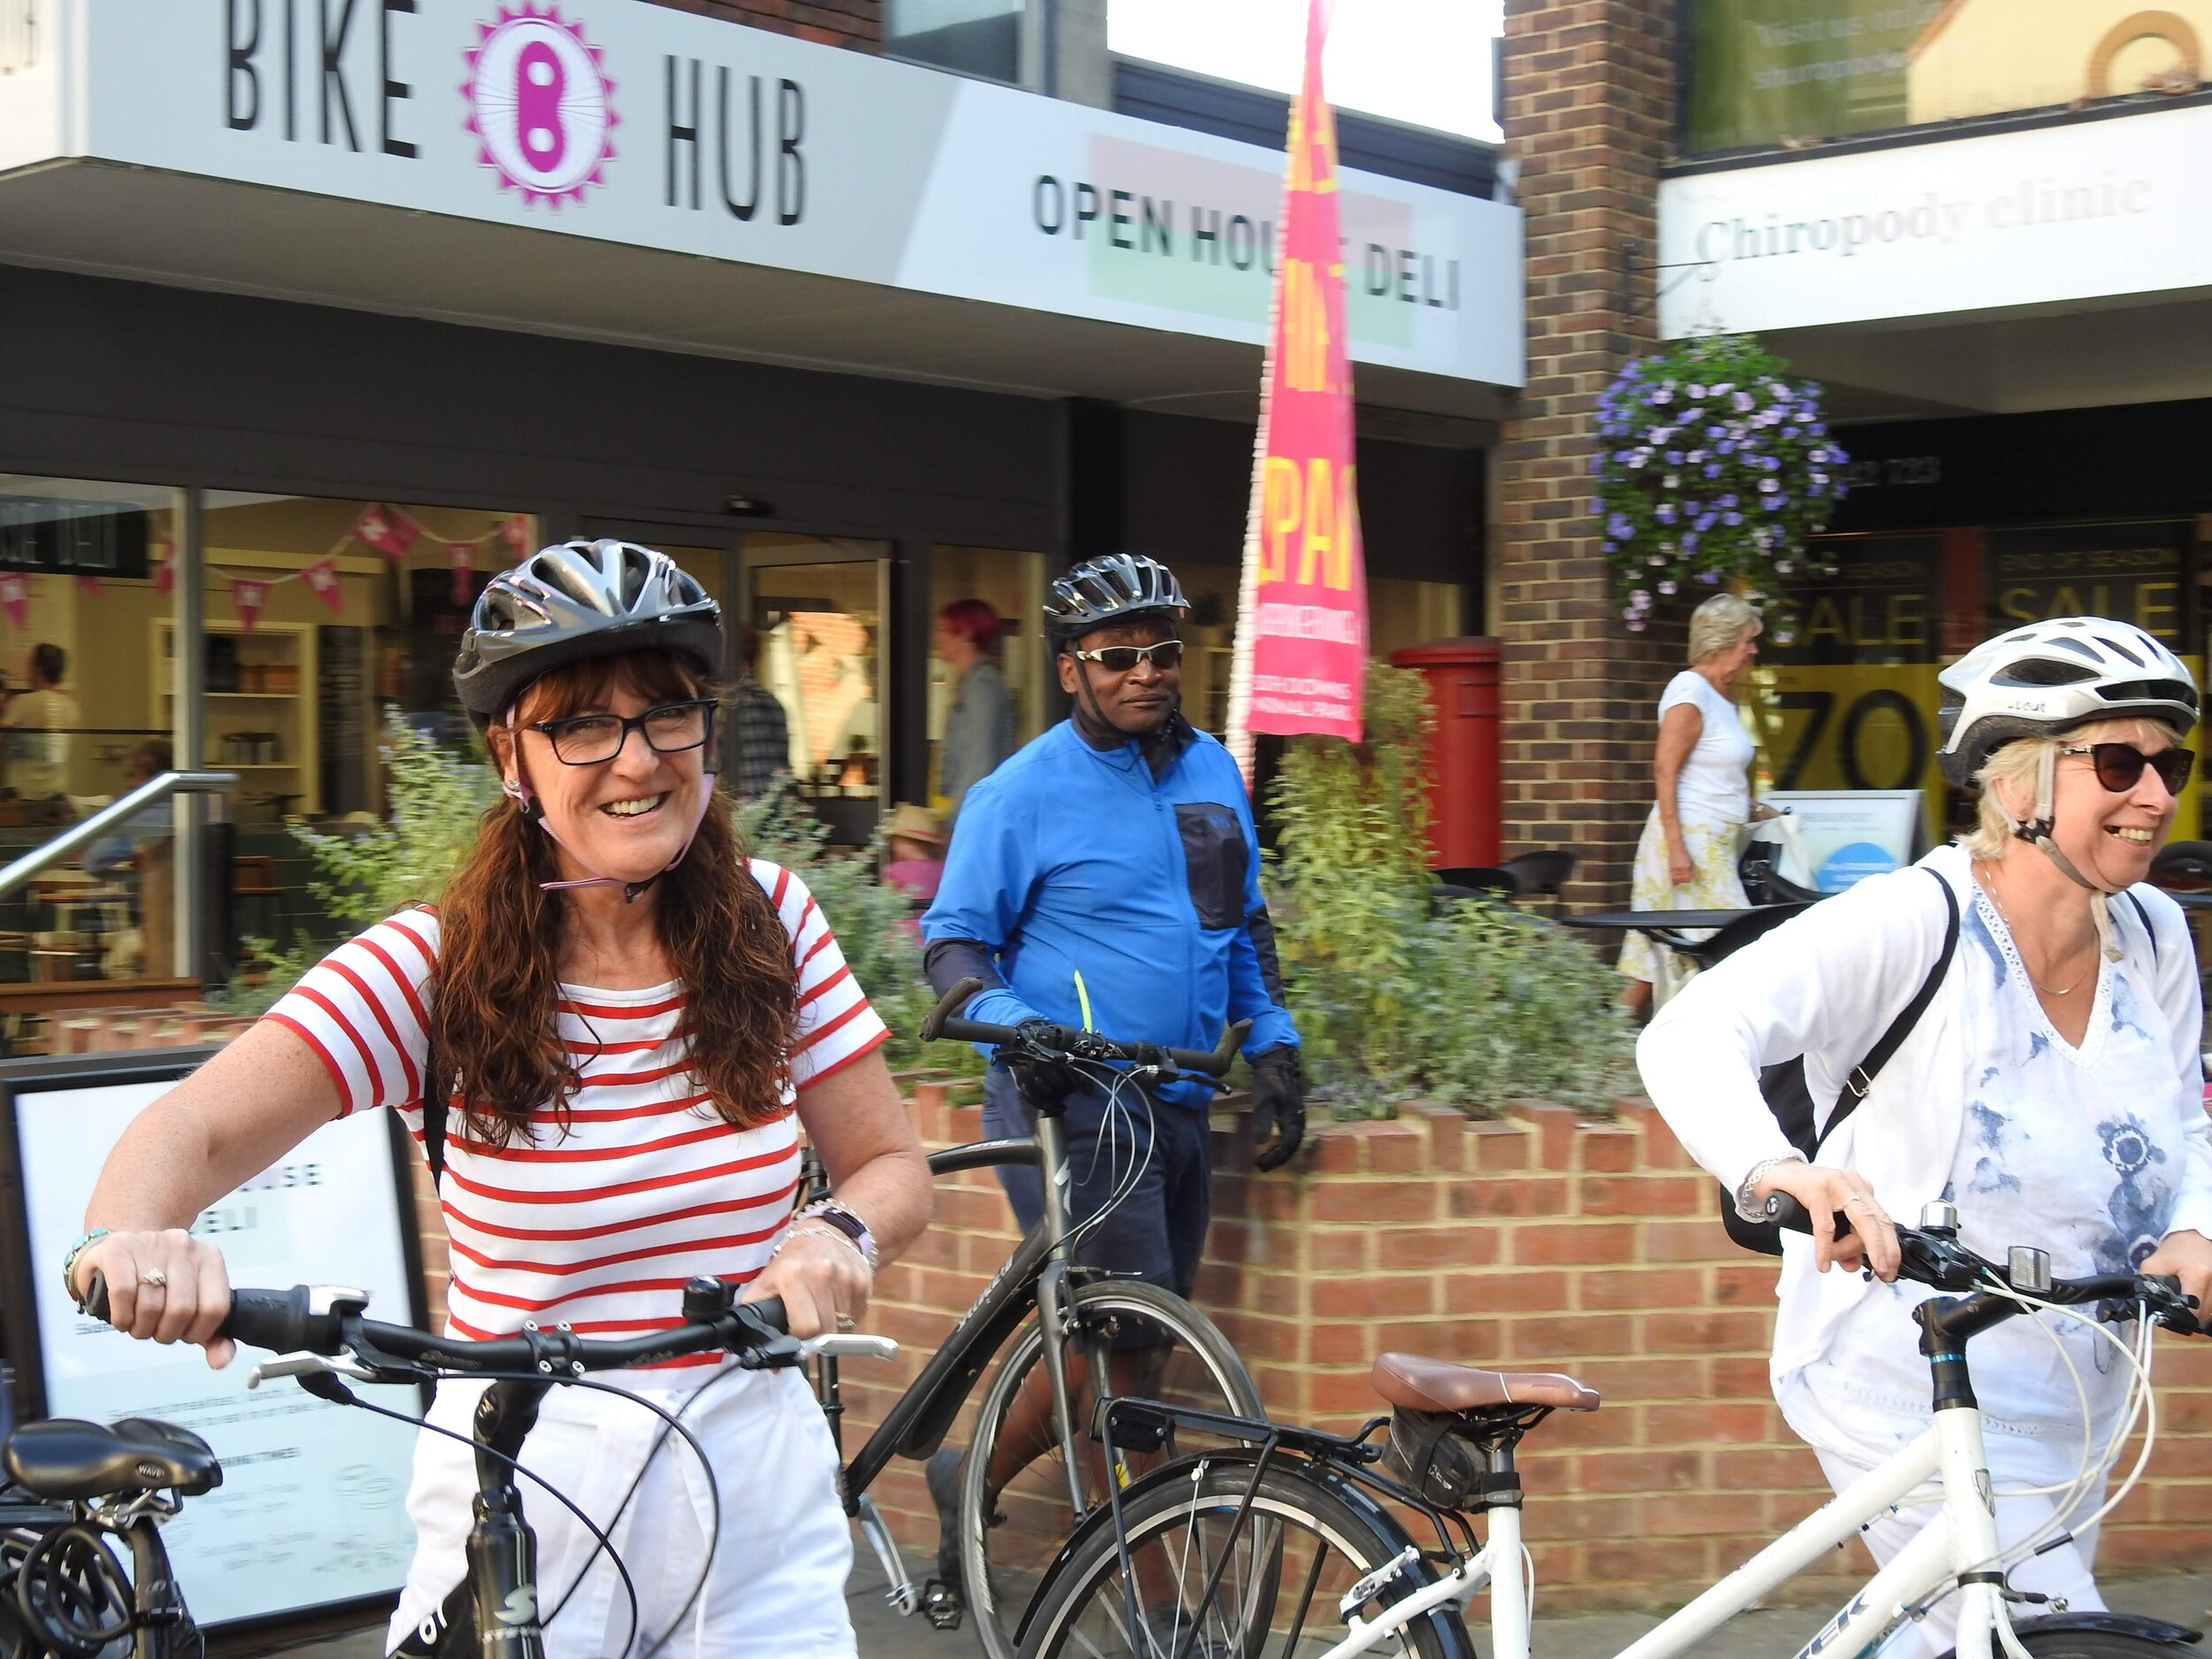 Bike Tours of Winchester